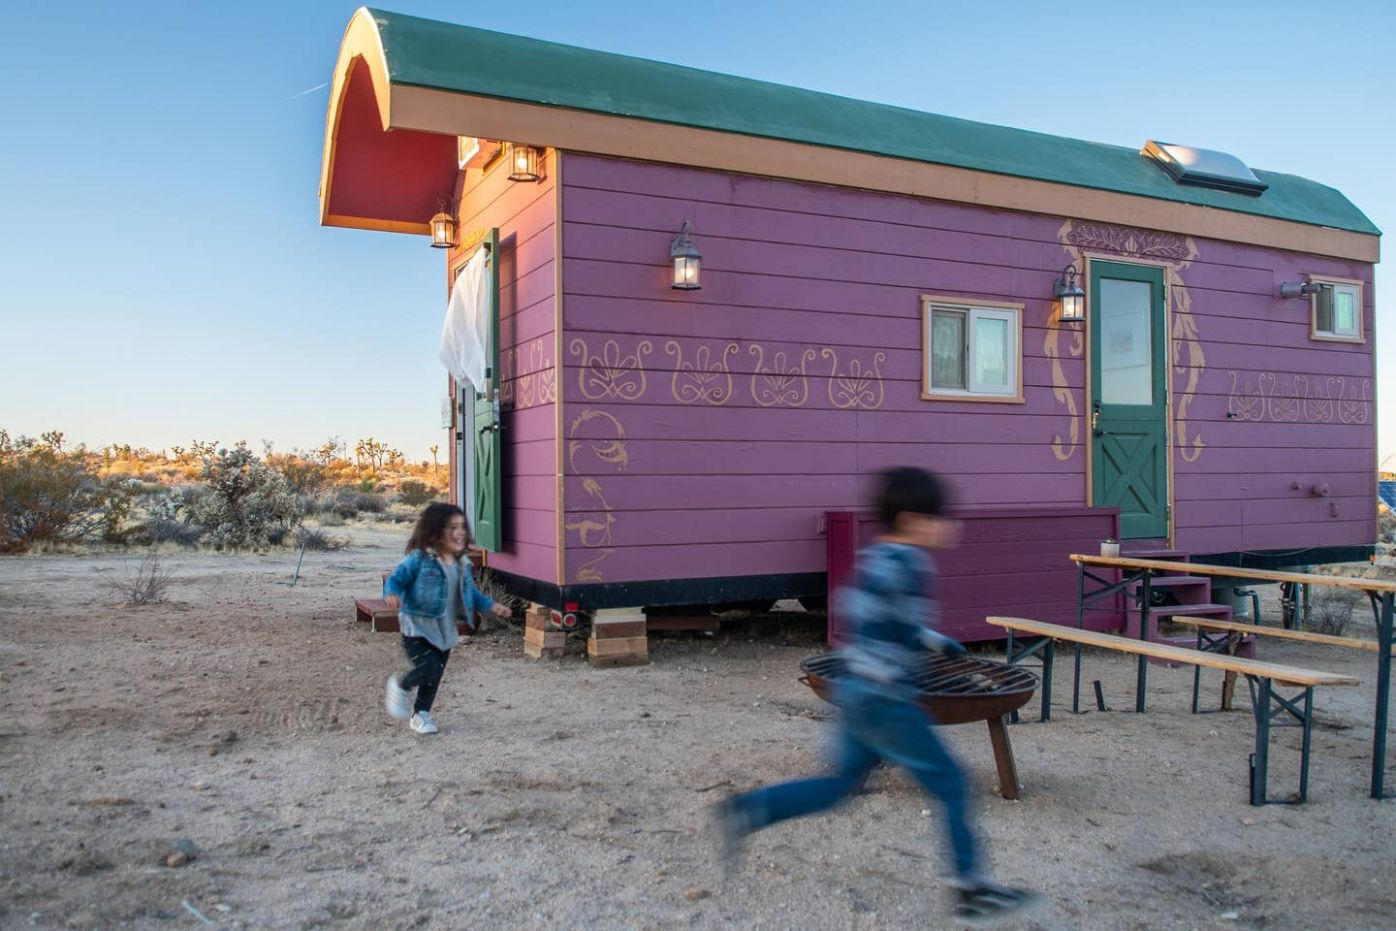 Joshua Tree Tiny House - The Gypsy Wagon - Tiny houses for Rent in ..